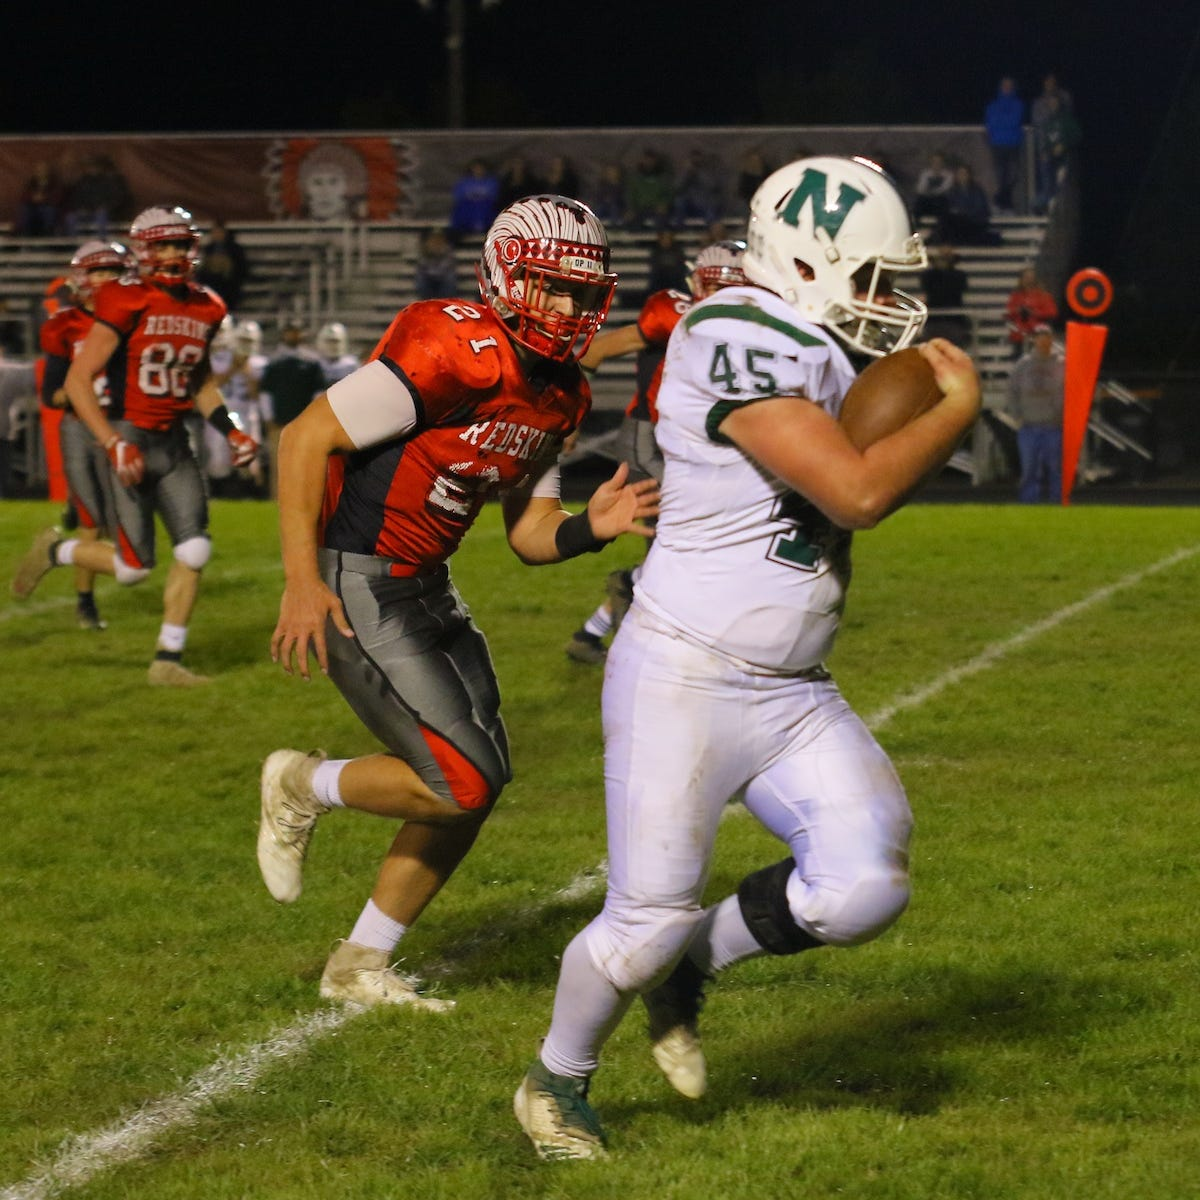 Fox fuels Northridge in victory at rival Utica